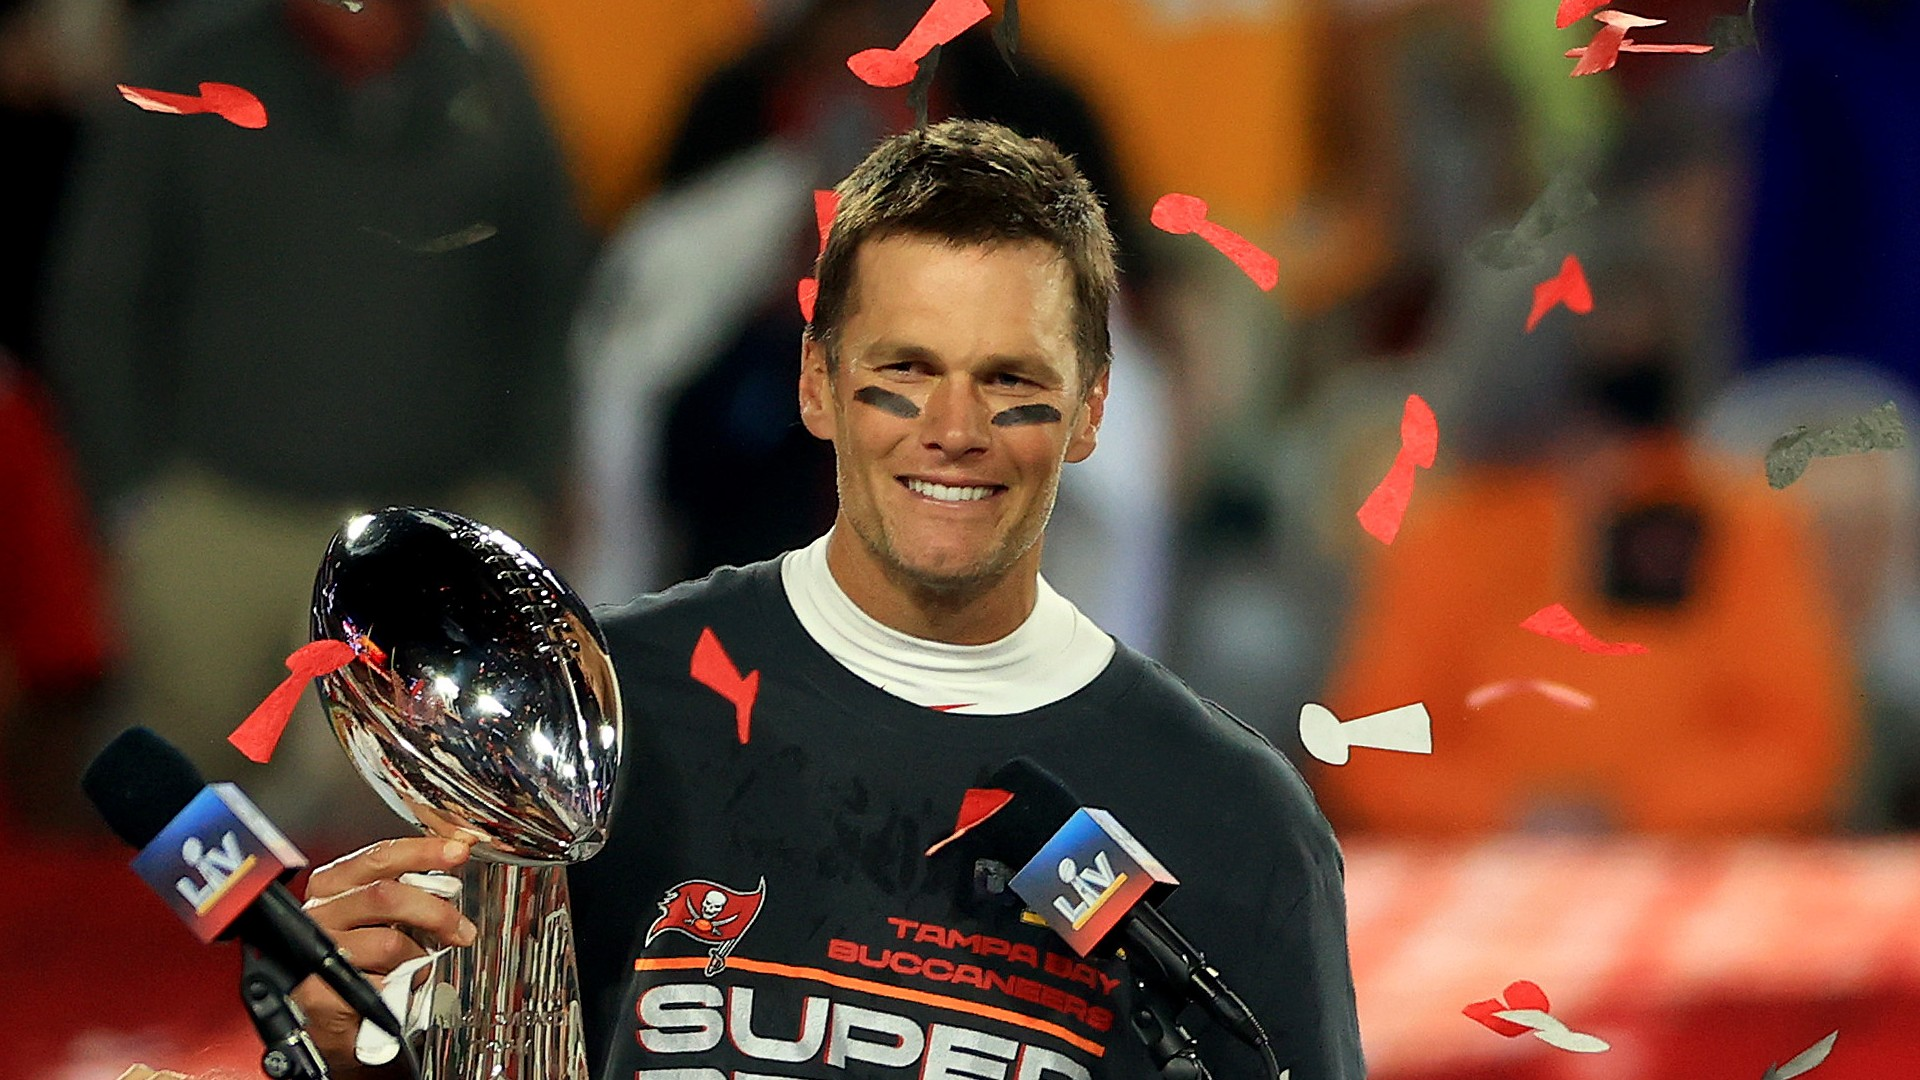 Tom Brady says he'll be back for more after 7th Super Bowl win: 'Better believe it'